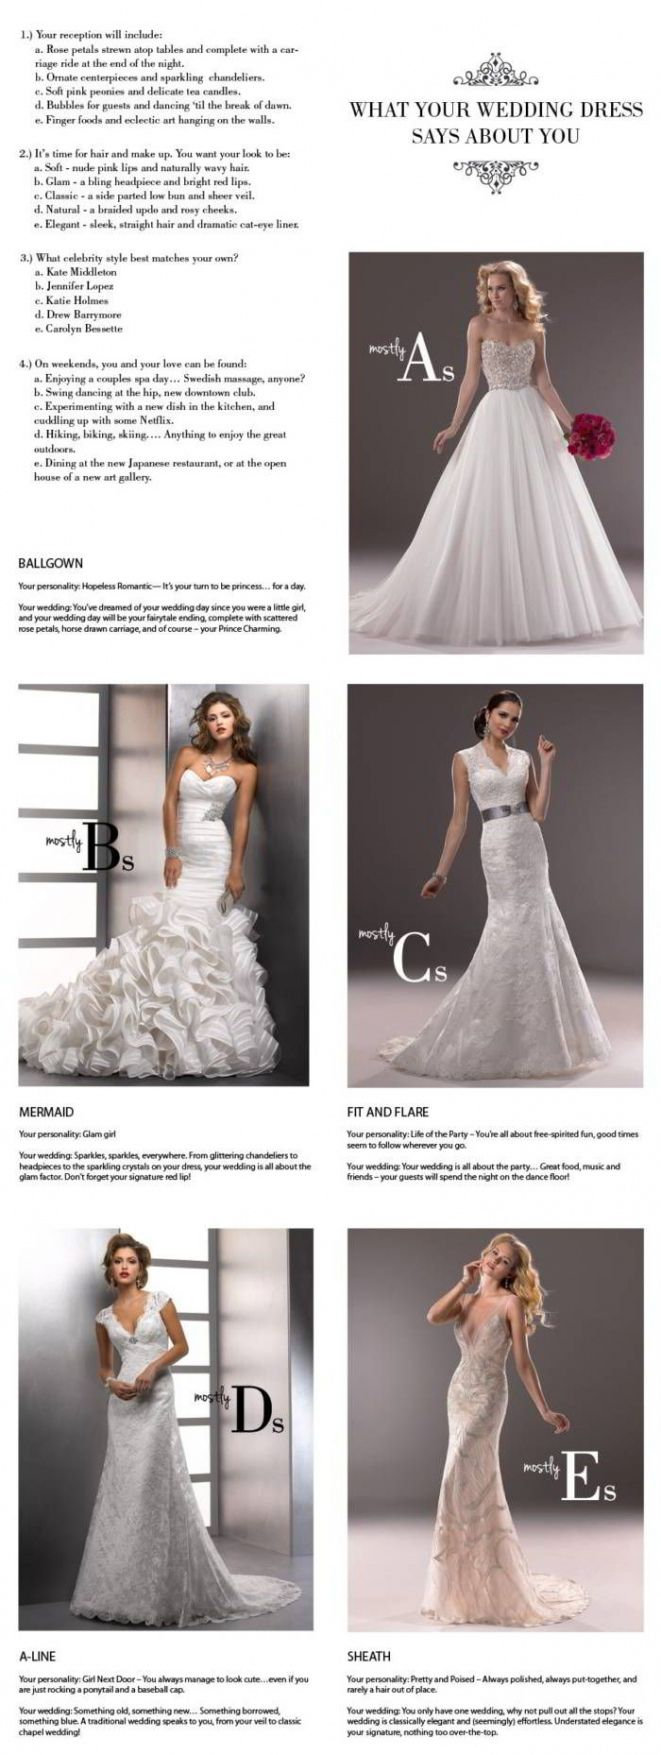 Pin by joanahairwedding on wedding ideas for you pinterest